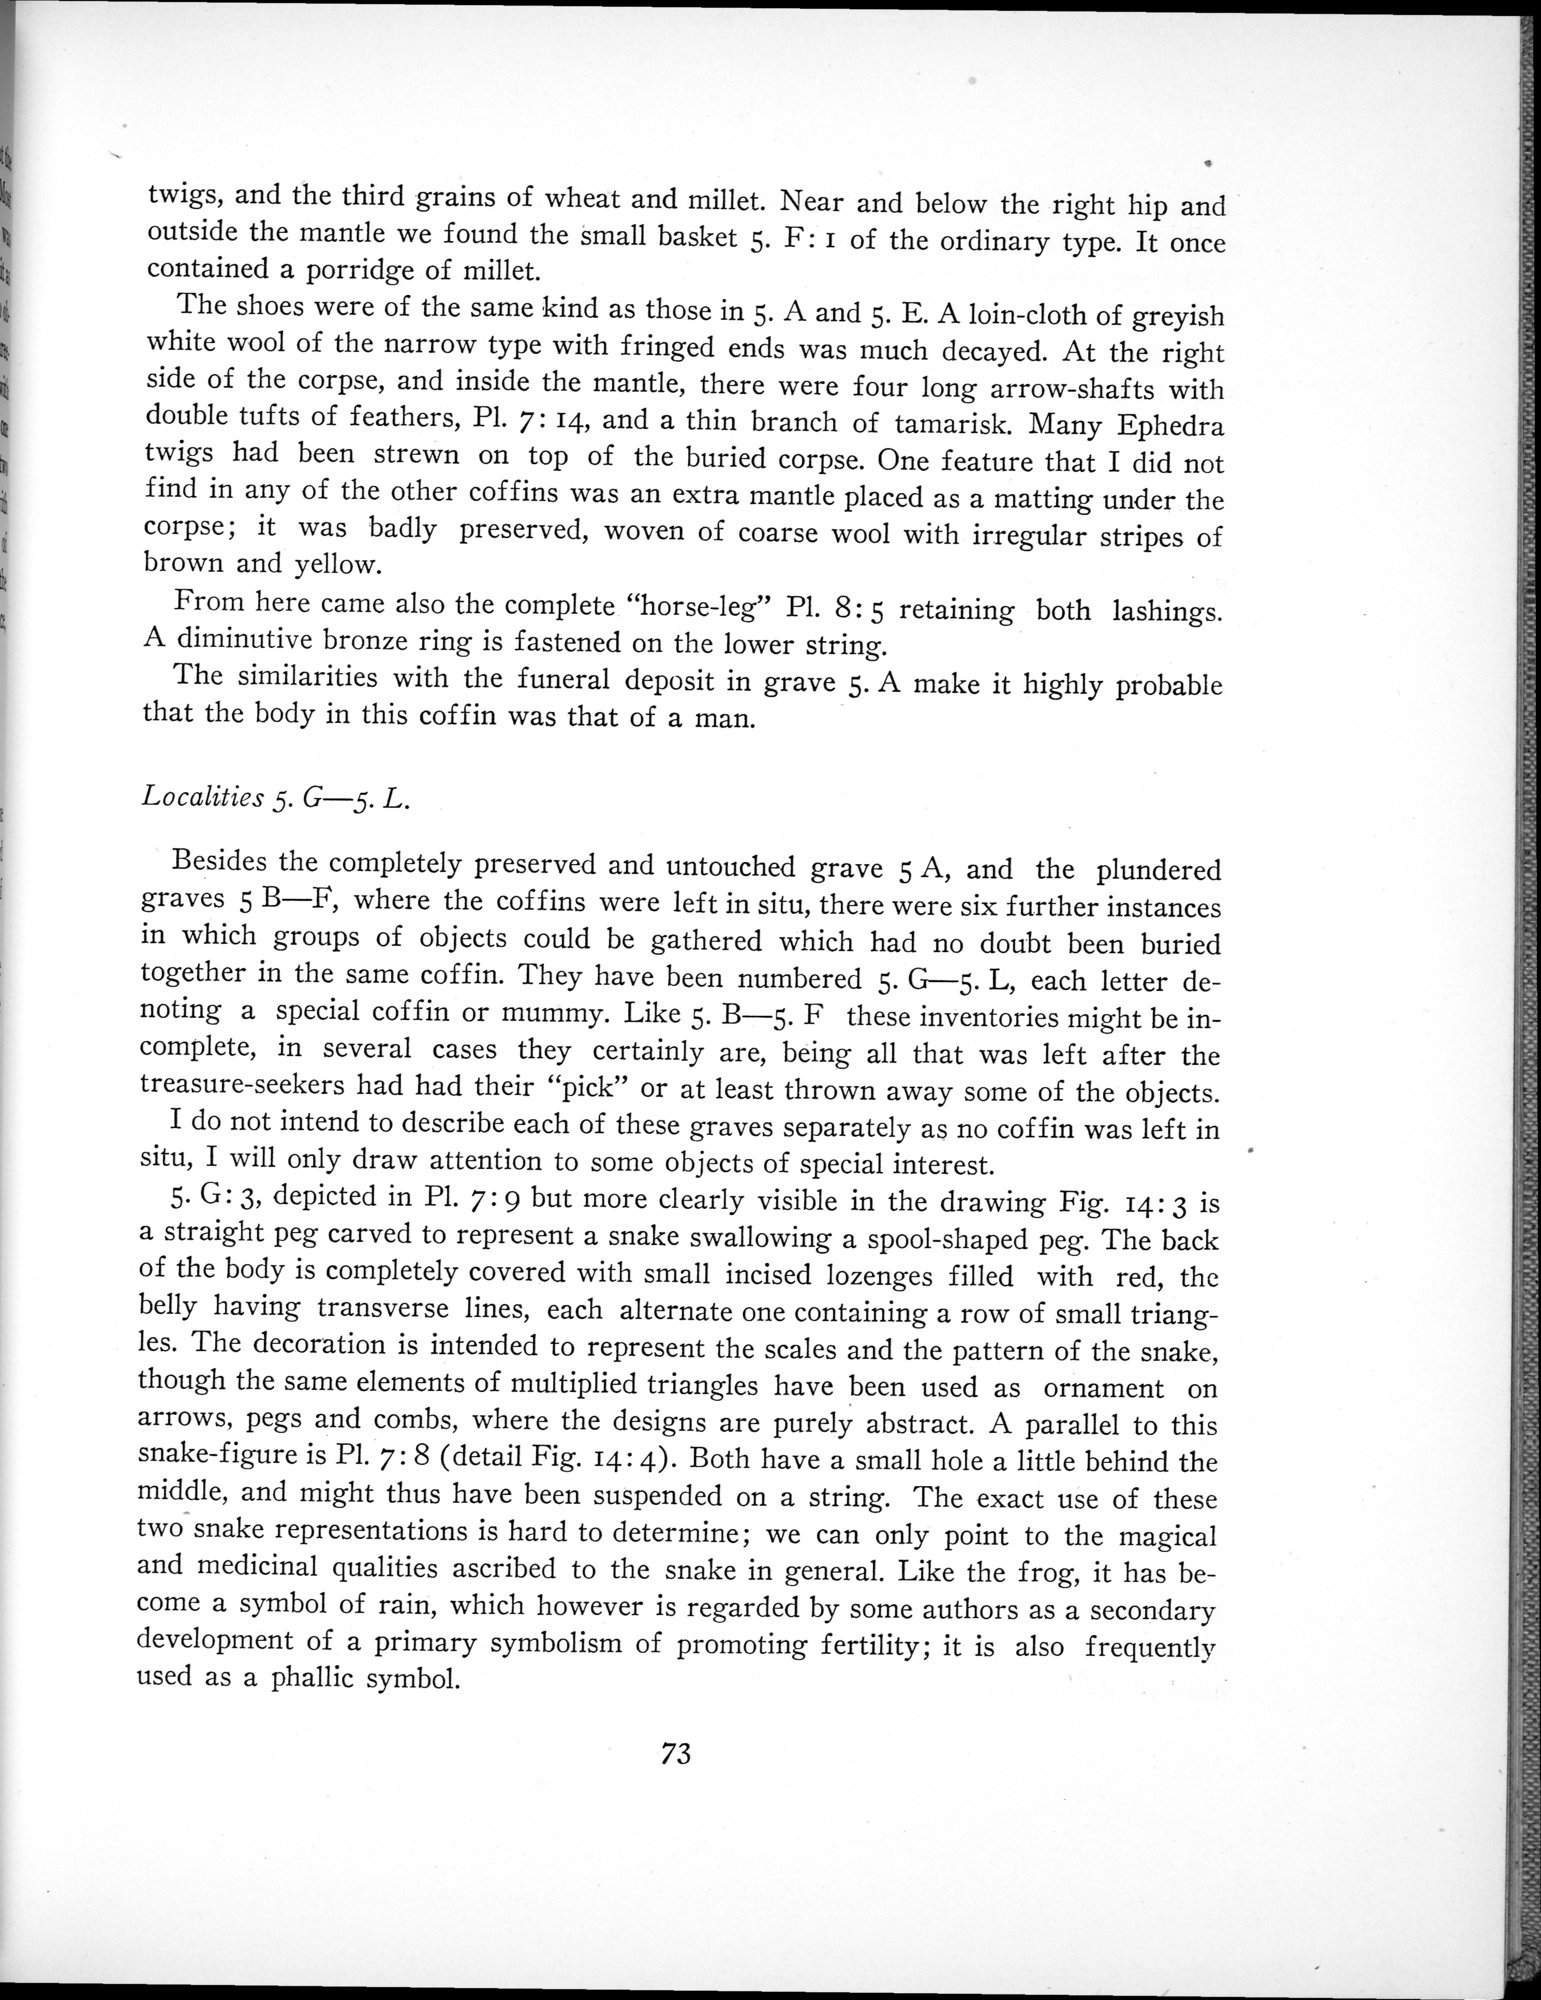 Archaeological Researches in Sinkiang : vol.1 / Page 83 (Grayscale High Resolution Image)